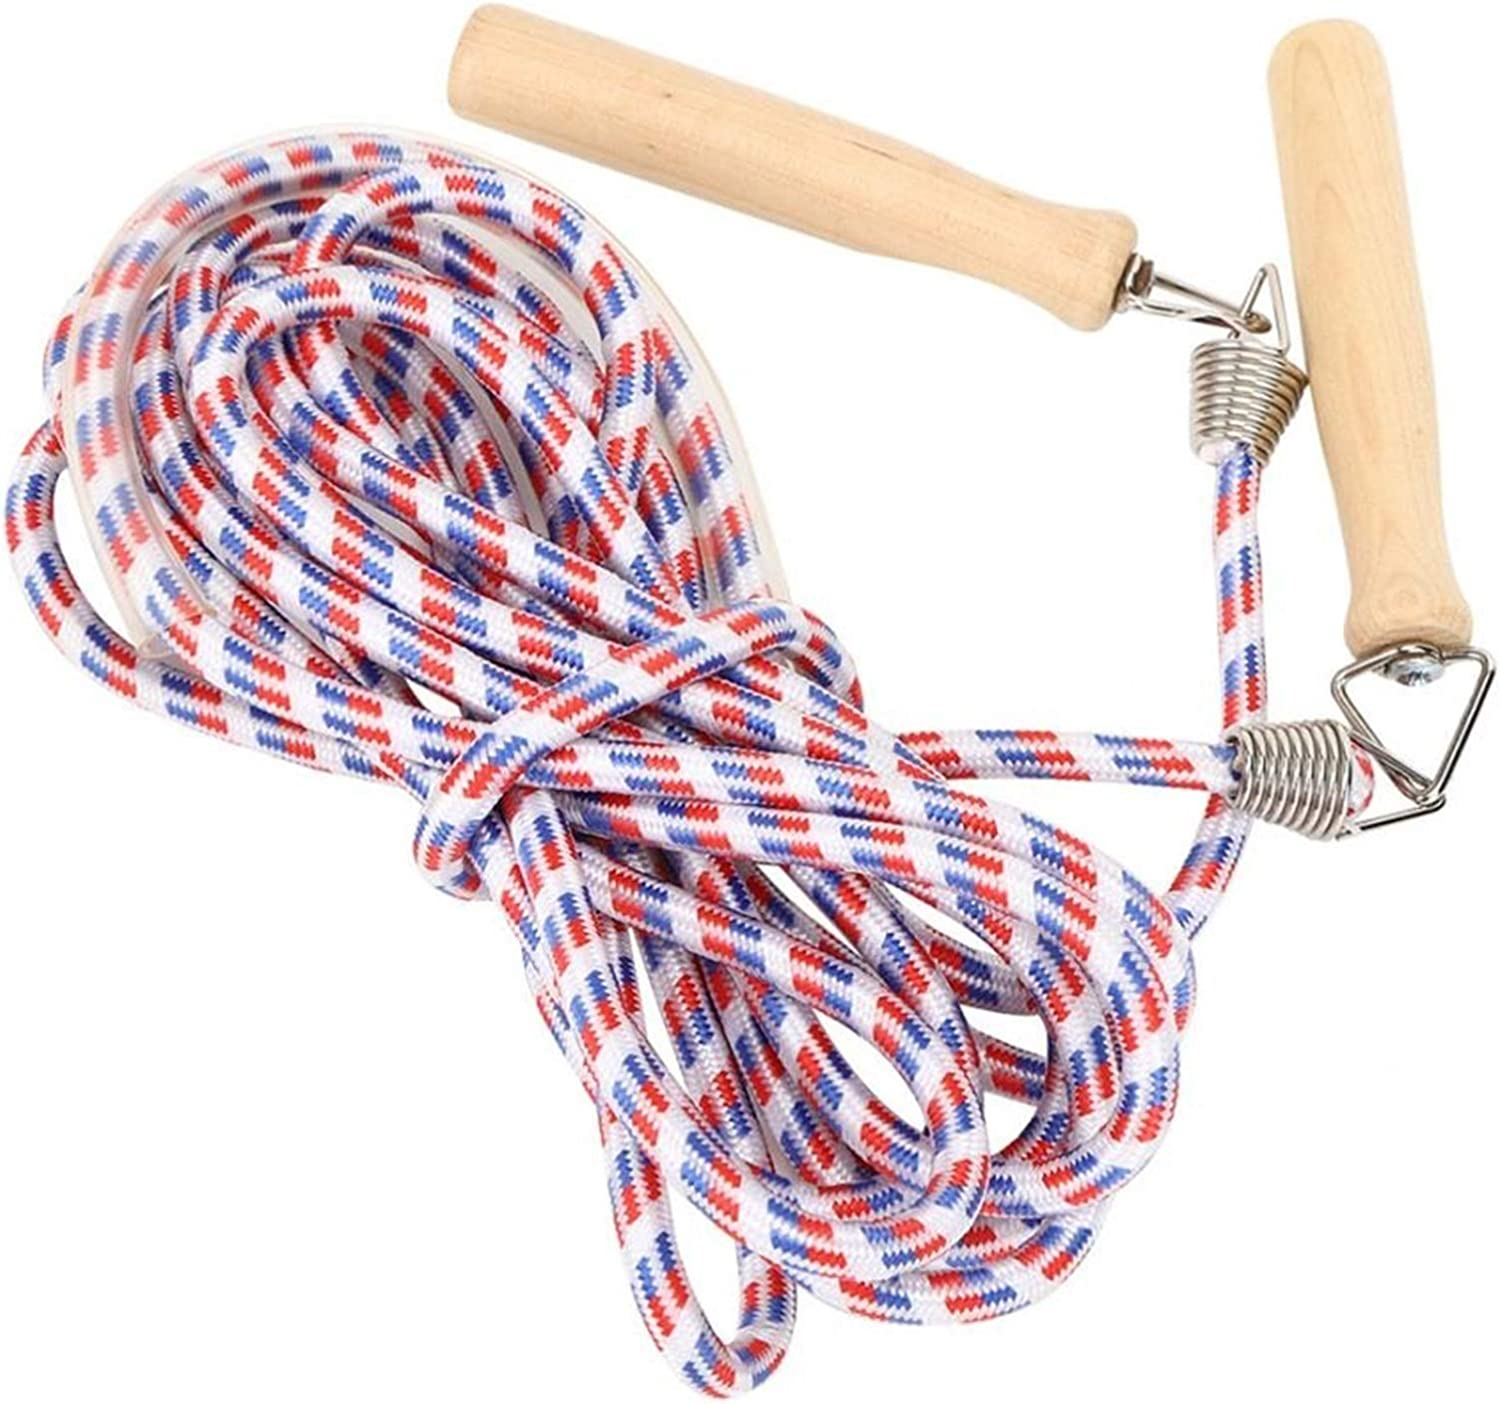 2021 model DWCA Skipping Rope Wooden Multiplaye Cotton Max 67% OFF Handle